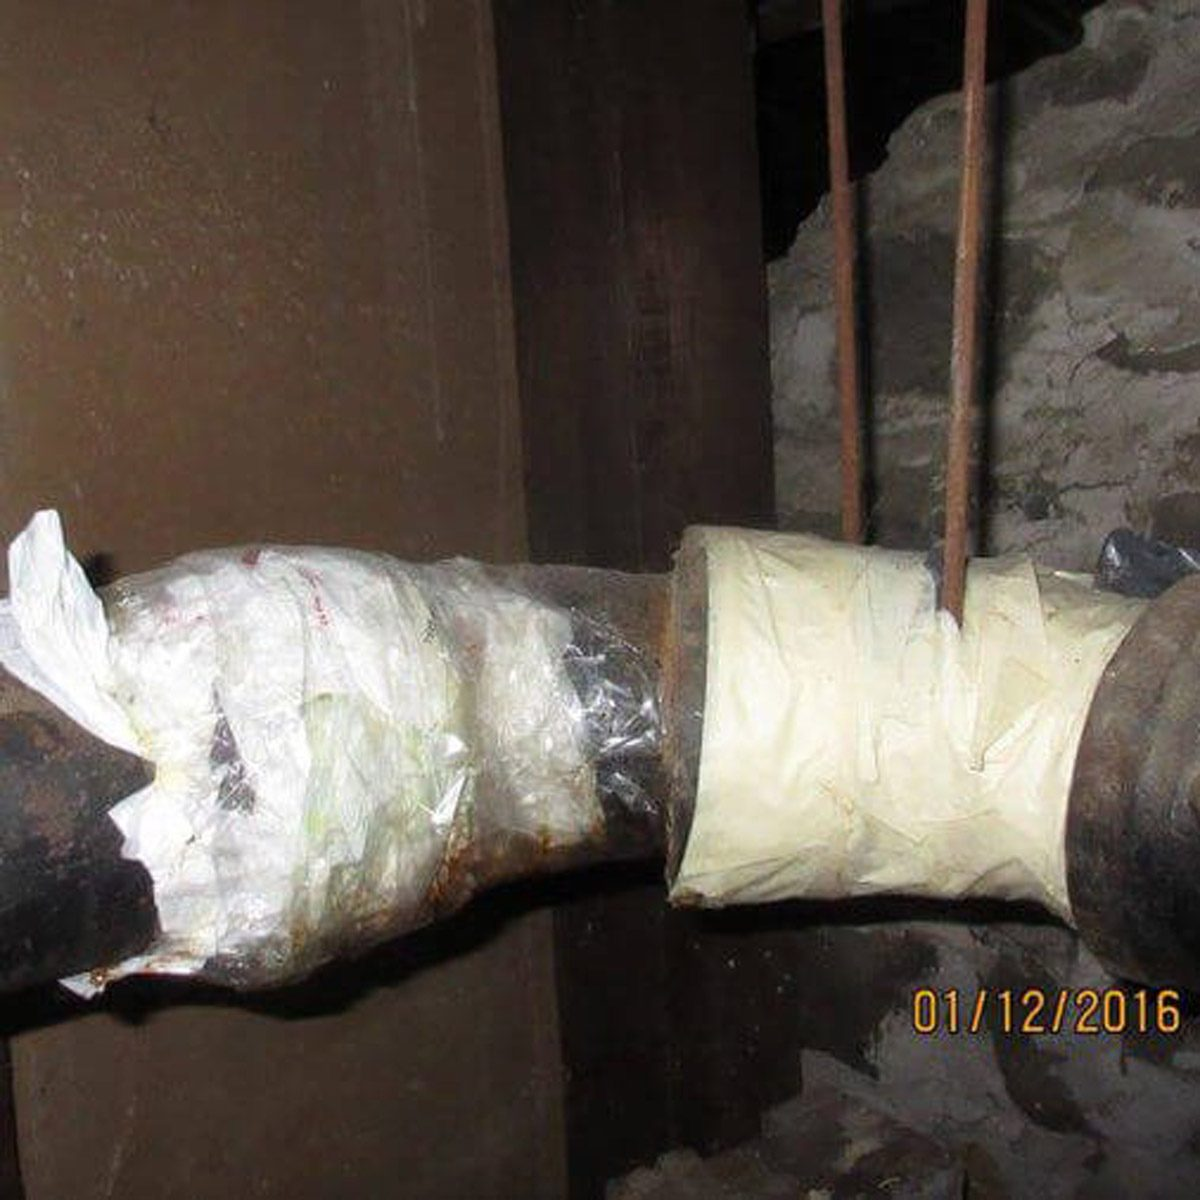 Plastic wrapped plumbing repair